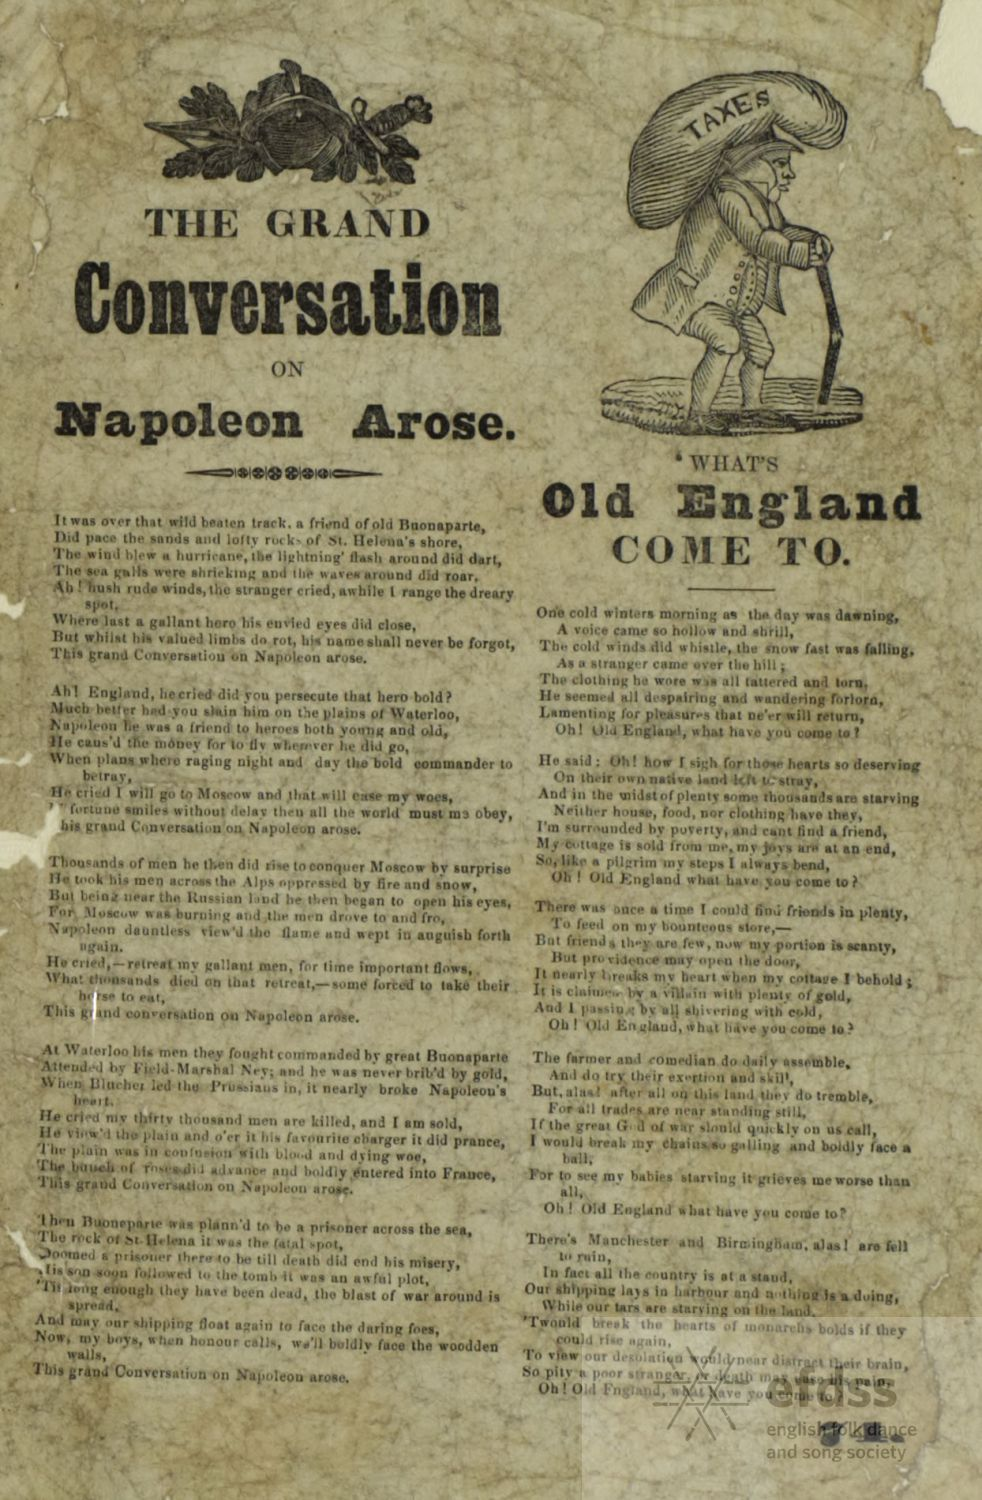 The Grand Conversation on Napoleon Arose - broadside from Ralph Vaughan Williams Manuscript Collection, via the Full English.